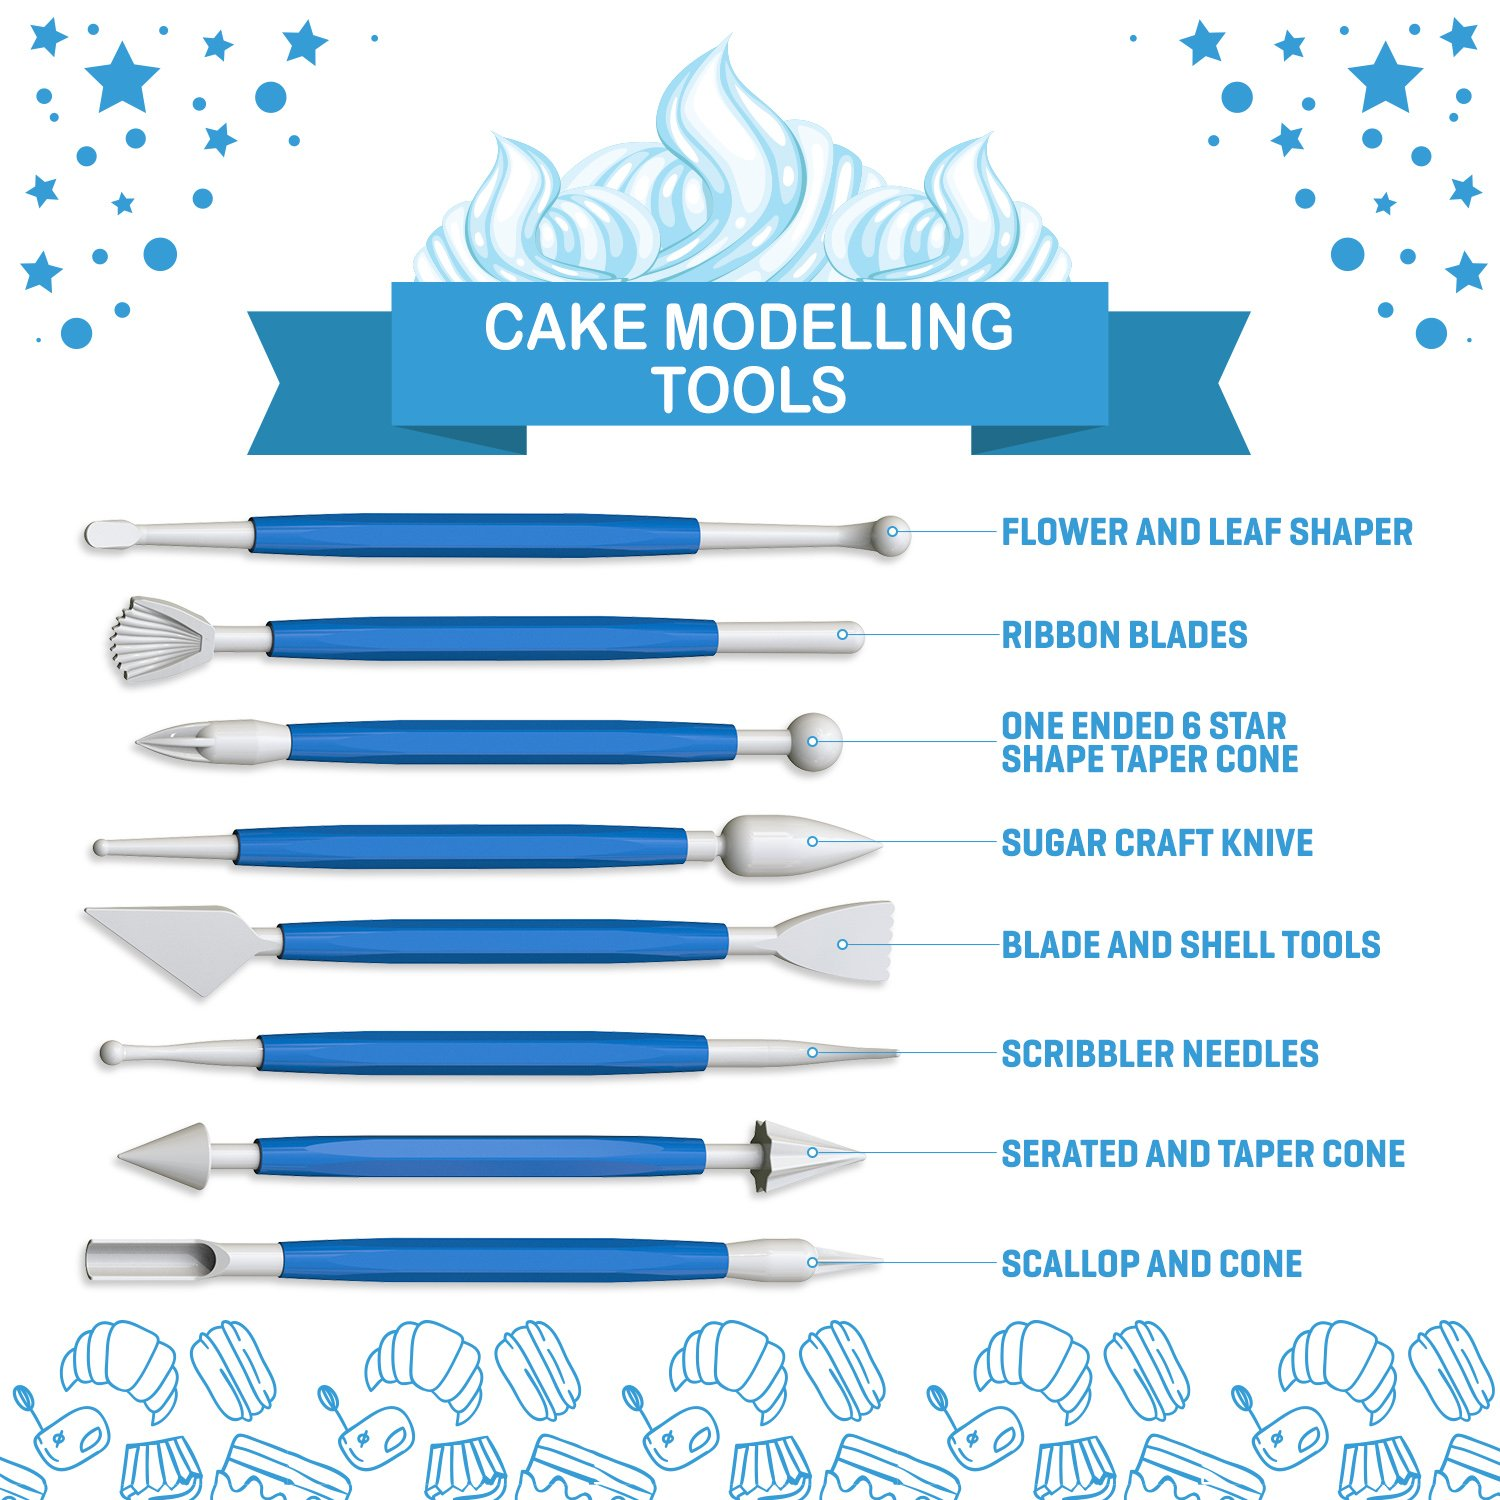 Frostinc Perfectly Assorted Cake Decorating Supplies 34 Pcs Kit - 10 Russian & Cone Icing Tips with 2 Couplers, 2 Reusable & 6 Disposable Piping Bags, 8 Model Tools, Scrapers & BONUS Items by Frostinc (Image #5)